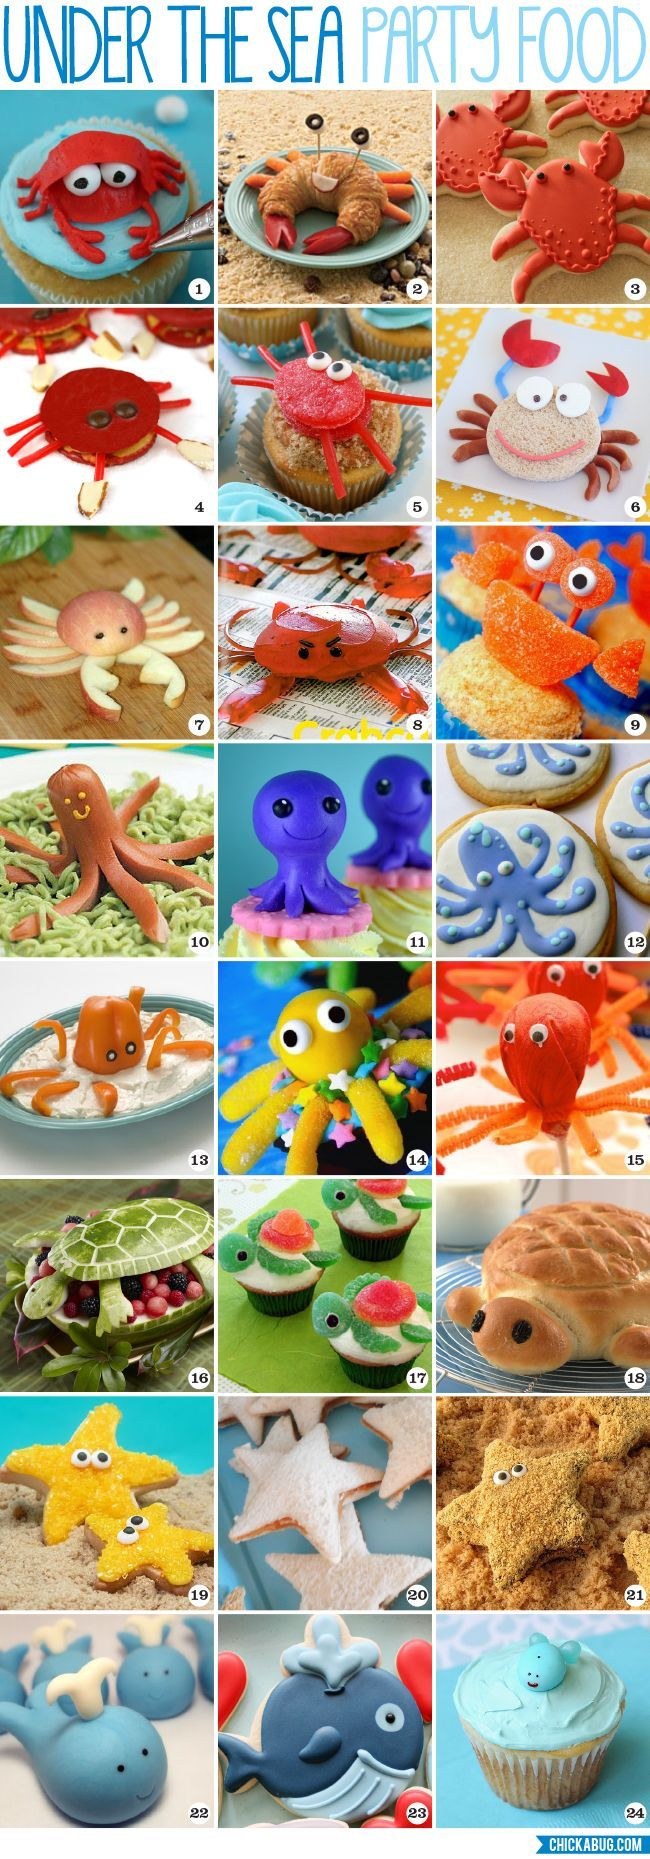 Under the Sea party food ideas – adorable recipes and tutorials!: